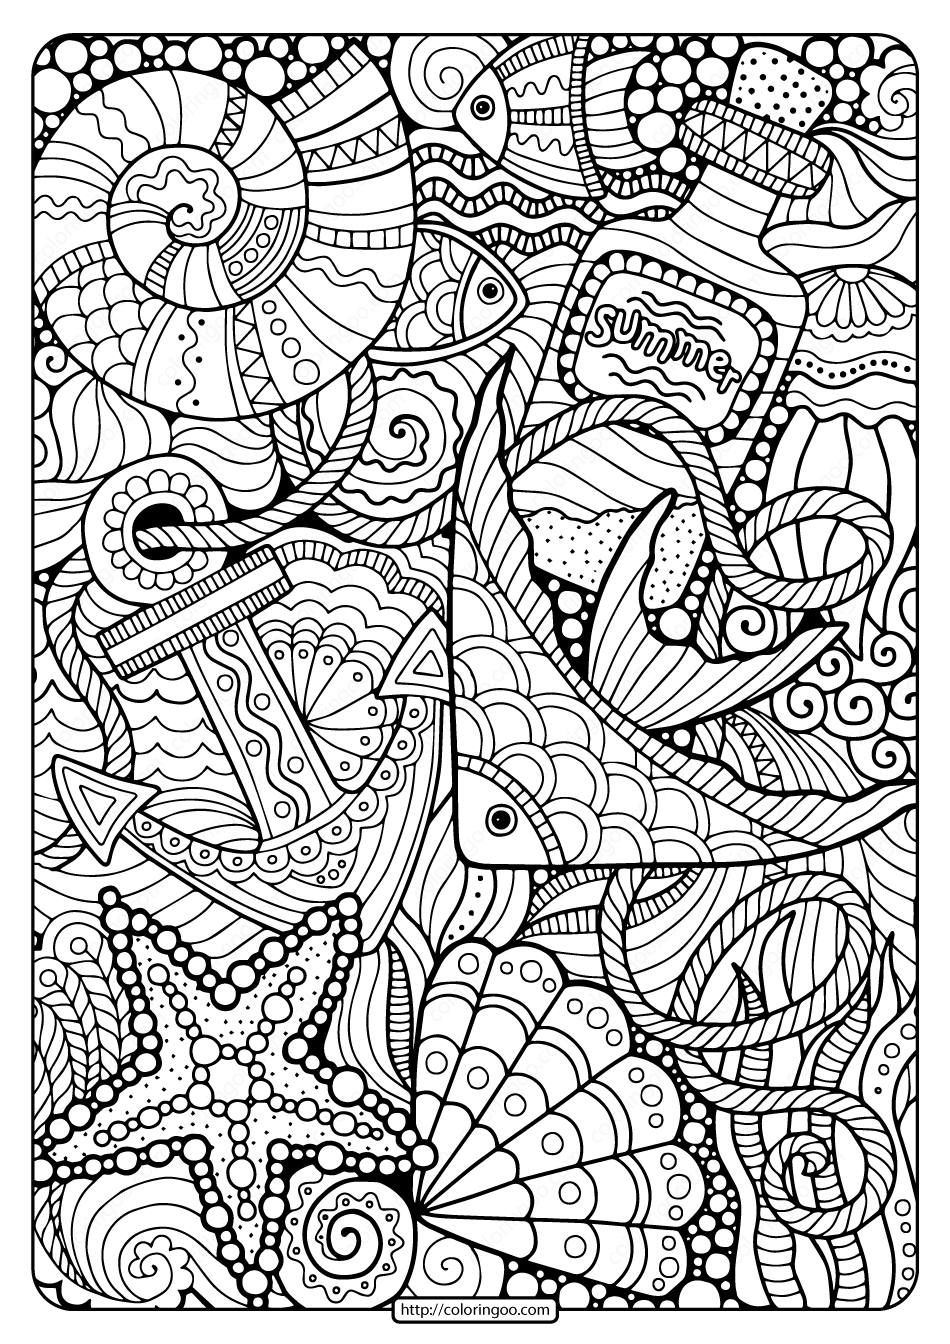 Printable Summer Sea Pdf Coloring Page Summer Coloring Pages Coloring Books Coloring Pages